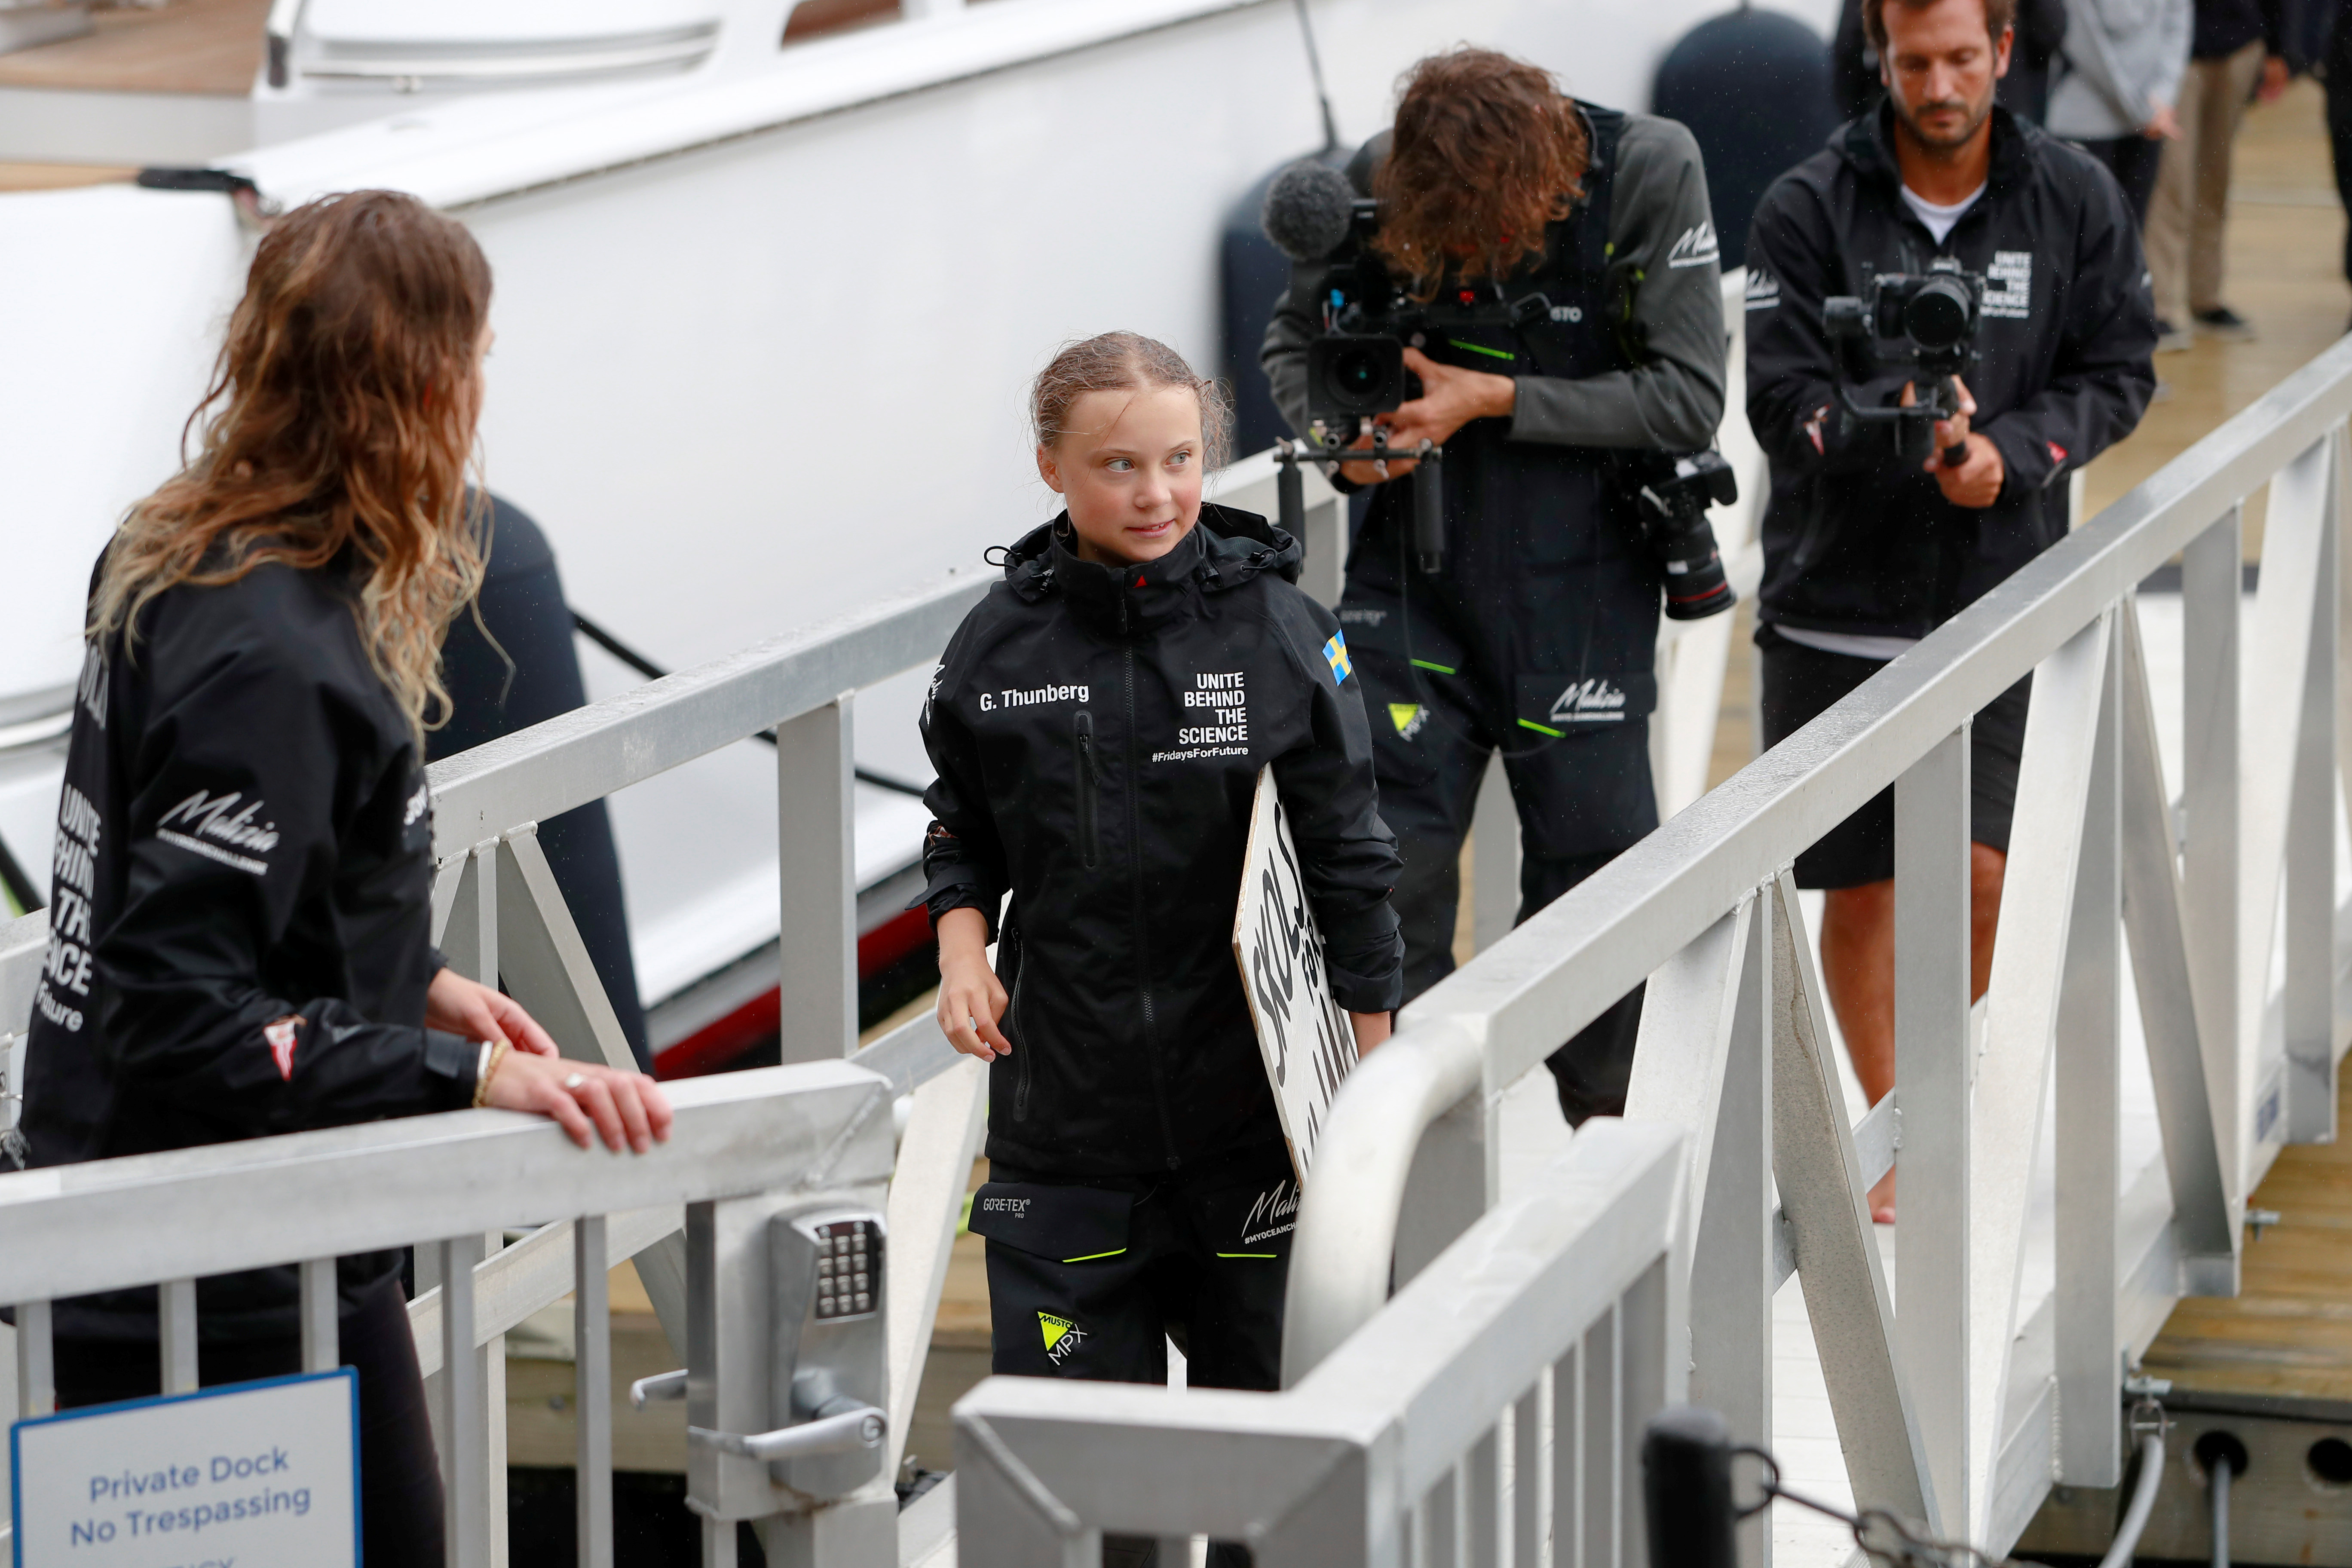 Swedish 16-year-old activist Greta Thunberg completes her trans-Atlantic crossing in order to attend a United Nations summit on climate change in New York, U.S., August 28, 2019. REUTERS/Andrew Kelly